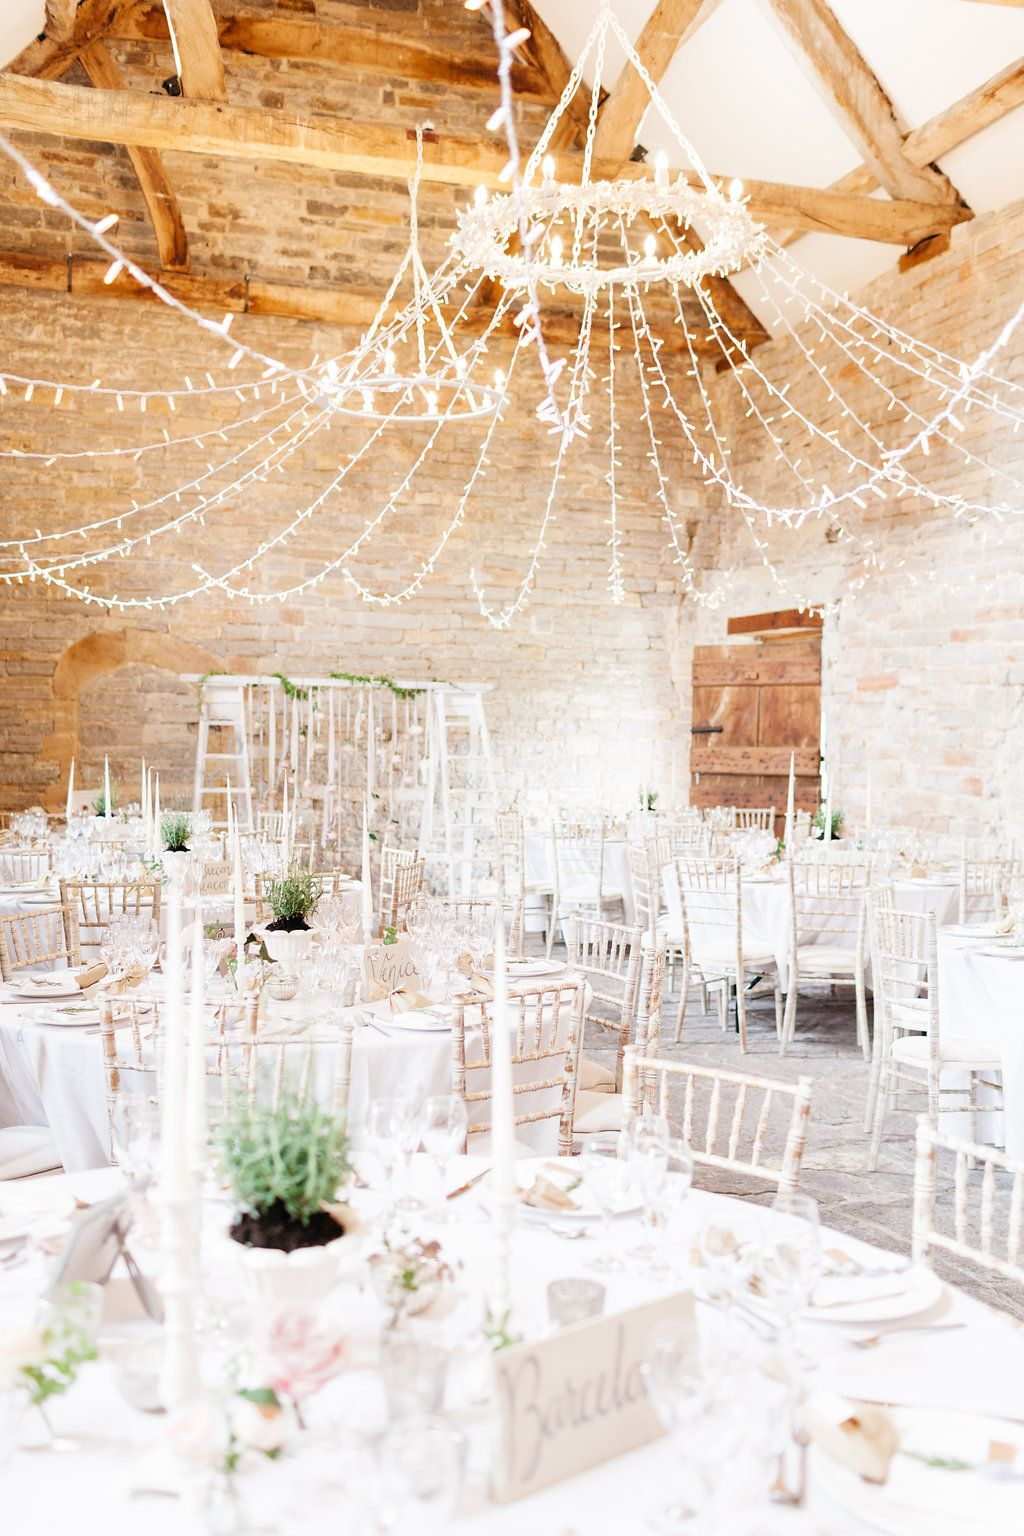 Almonry Barn Wedding Venue, Somerset | Barn wedding venue ...